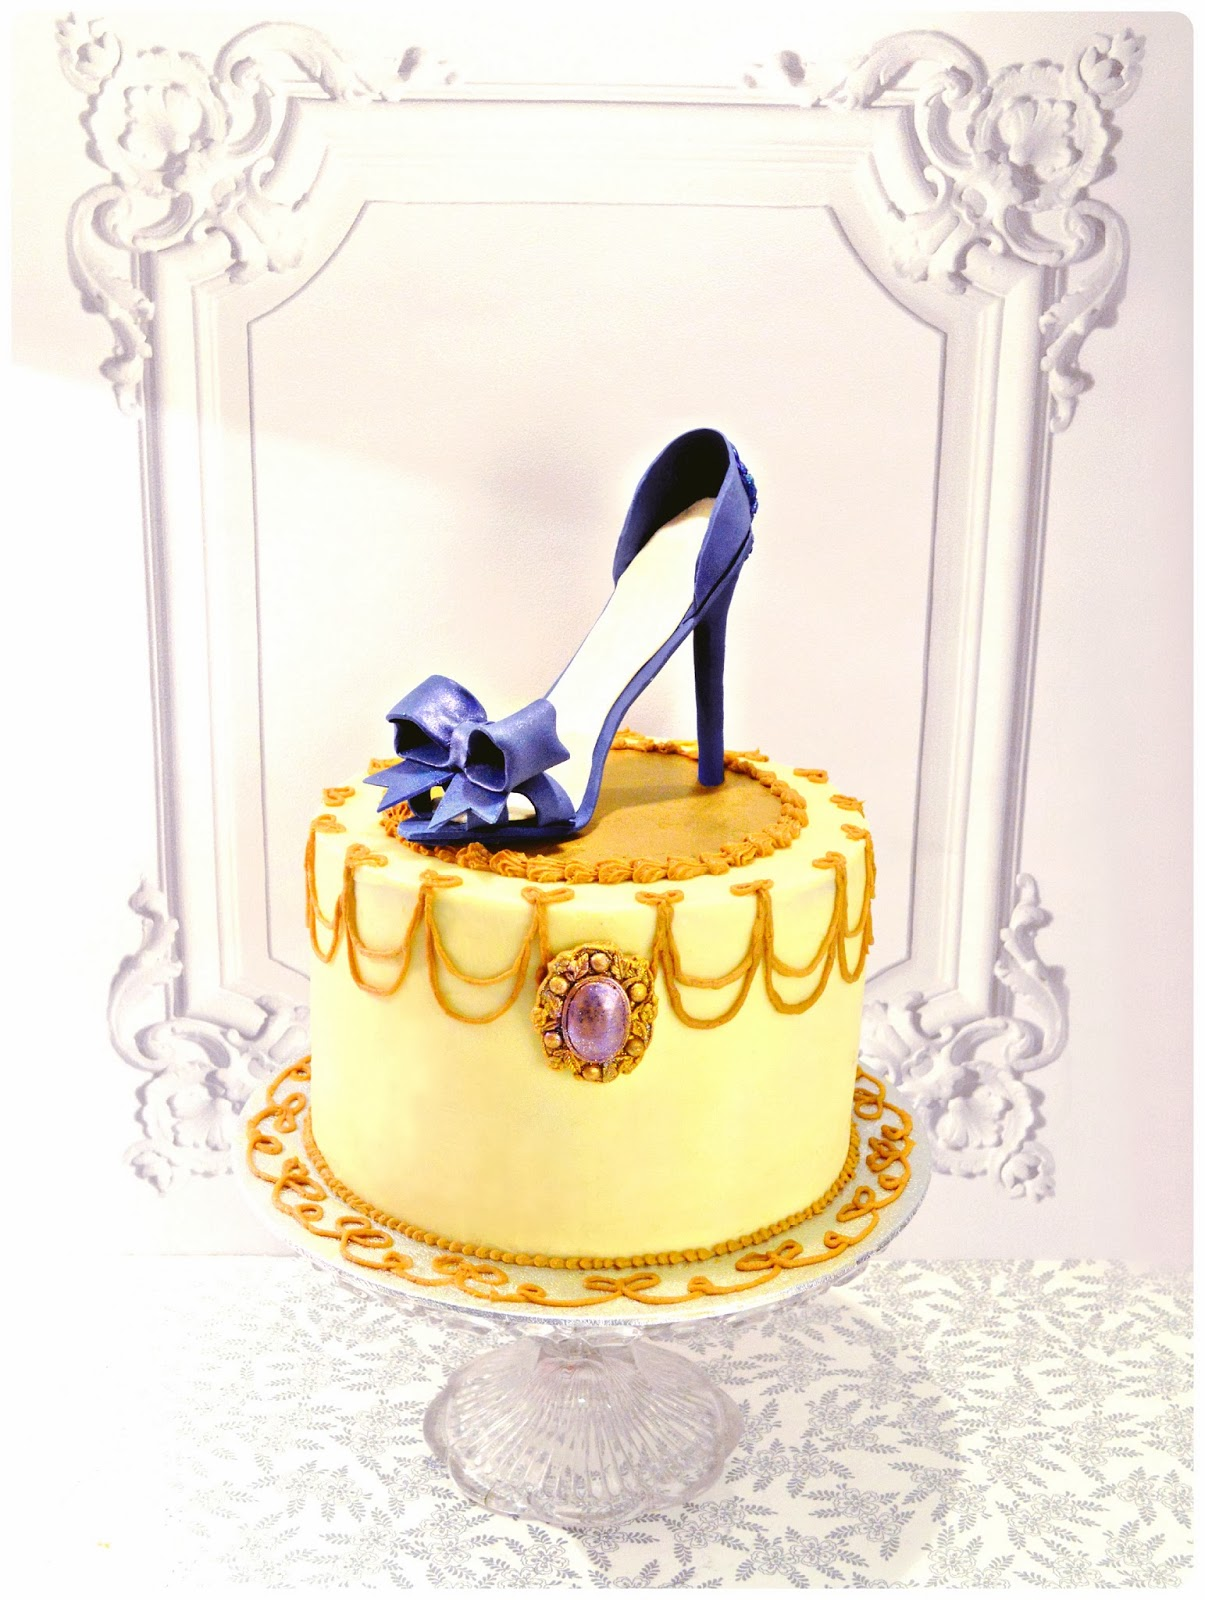 Blue High Heel Shoe with Bow and Jewel Cake   Chérie Kelly